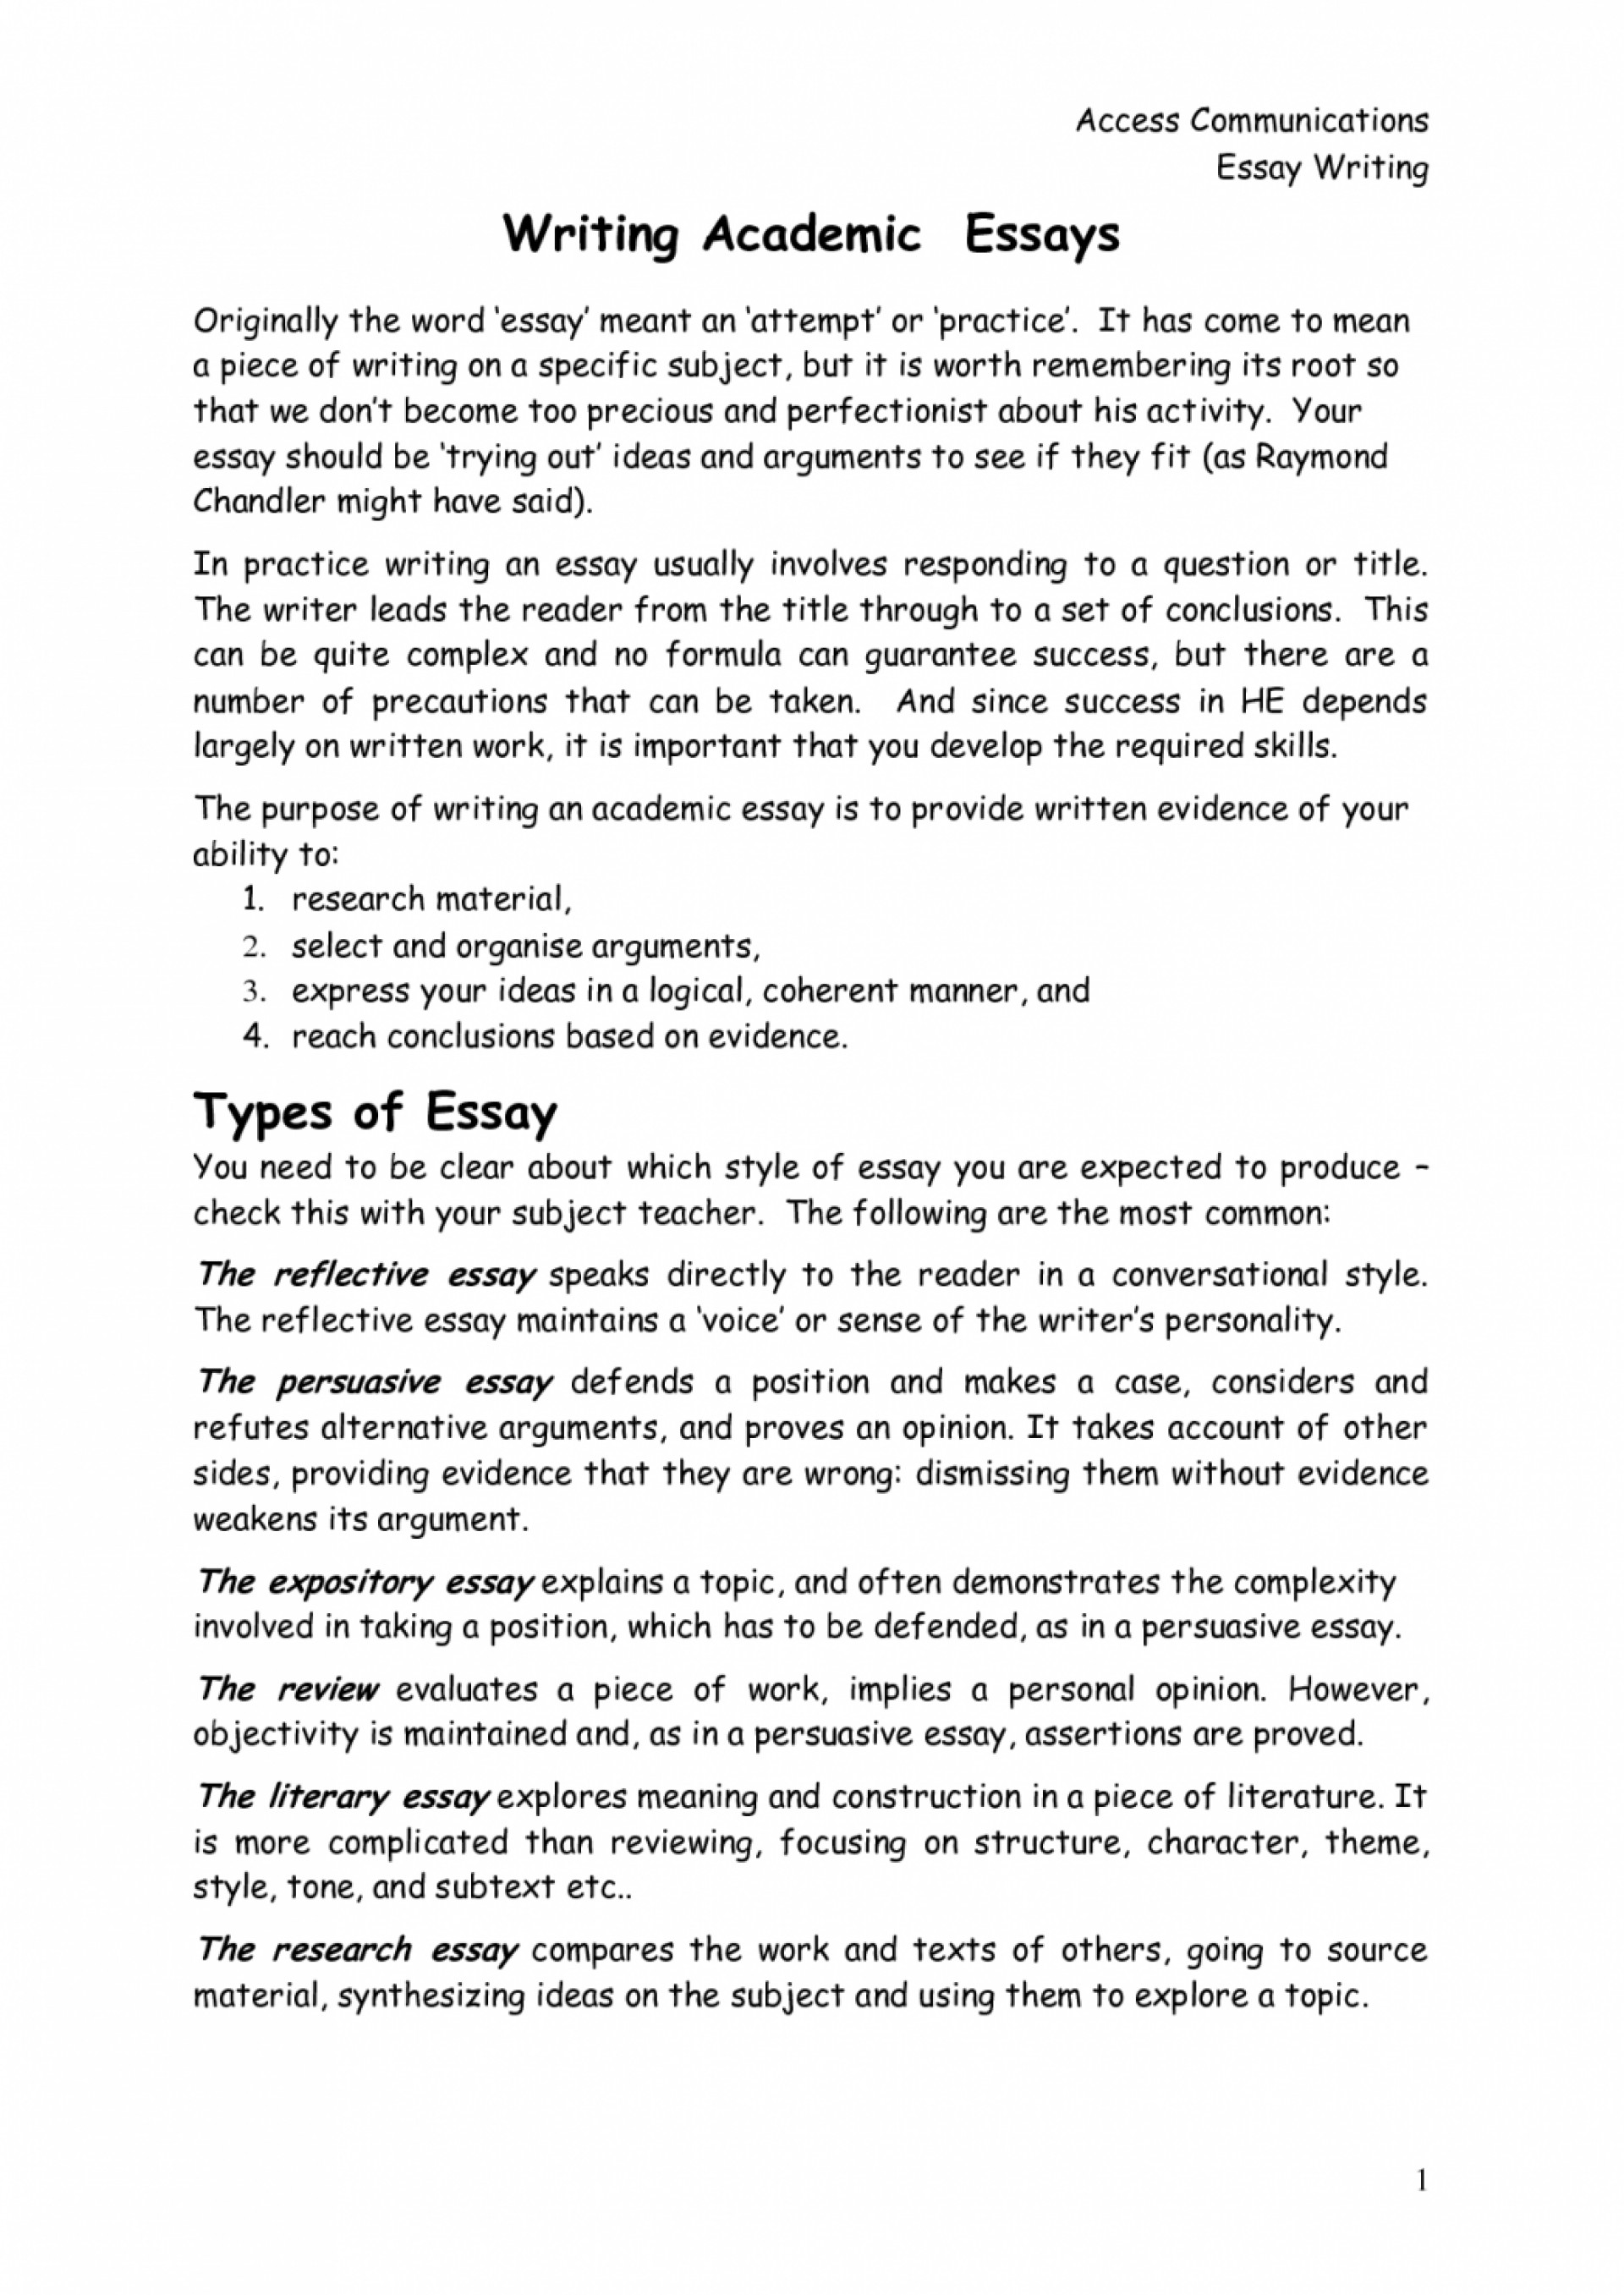 006 Academic Essay Write An Introduction Example Of Good How To Plan Youtube Sample Pdf Uk Ielts Ppt Conclusion Wondrous Definition Essays Should Always Be Organized By Titles 1920